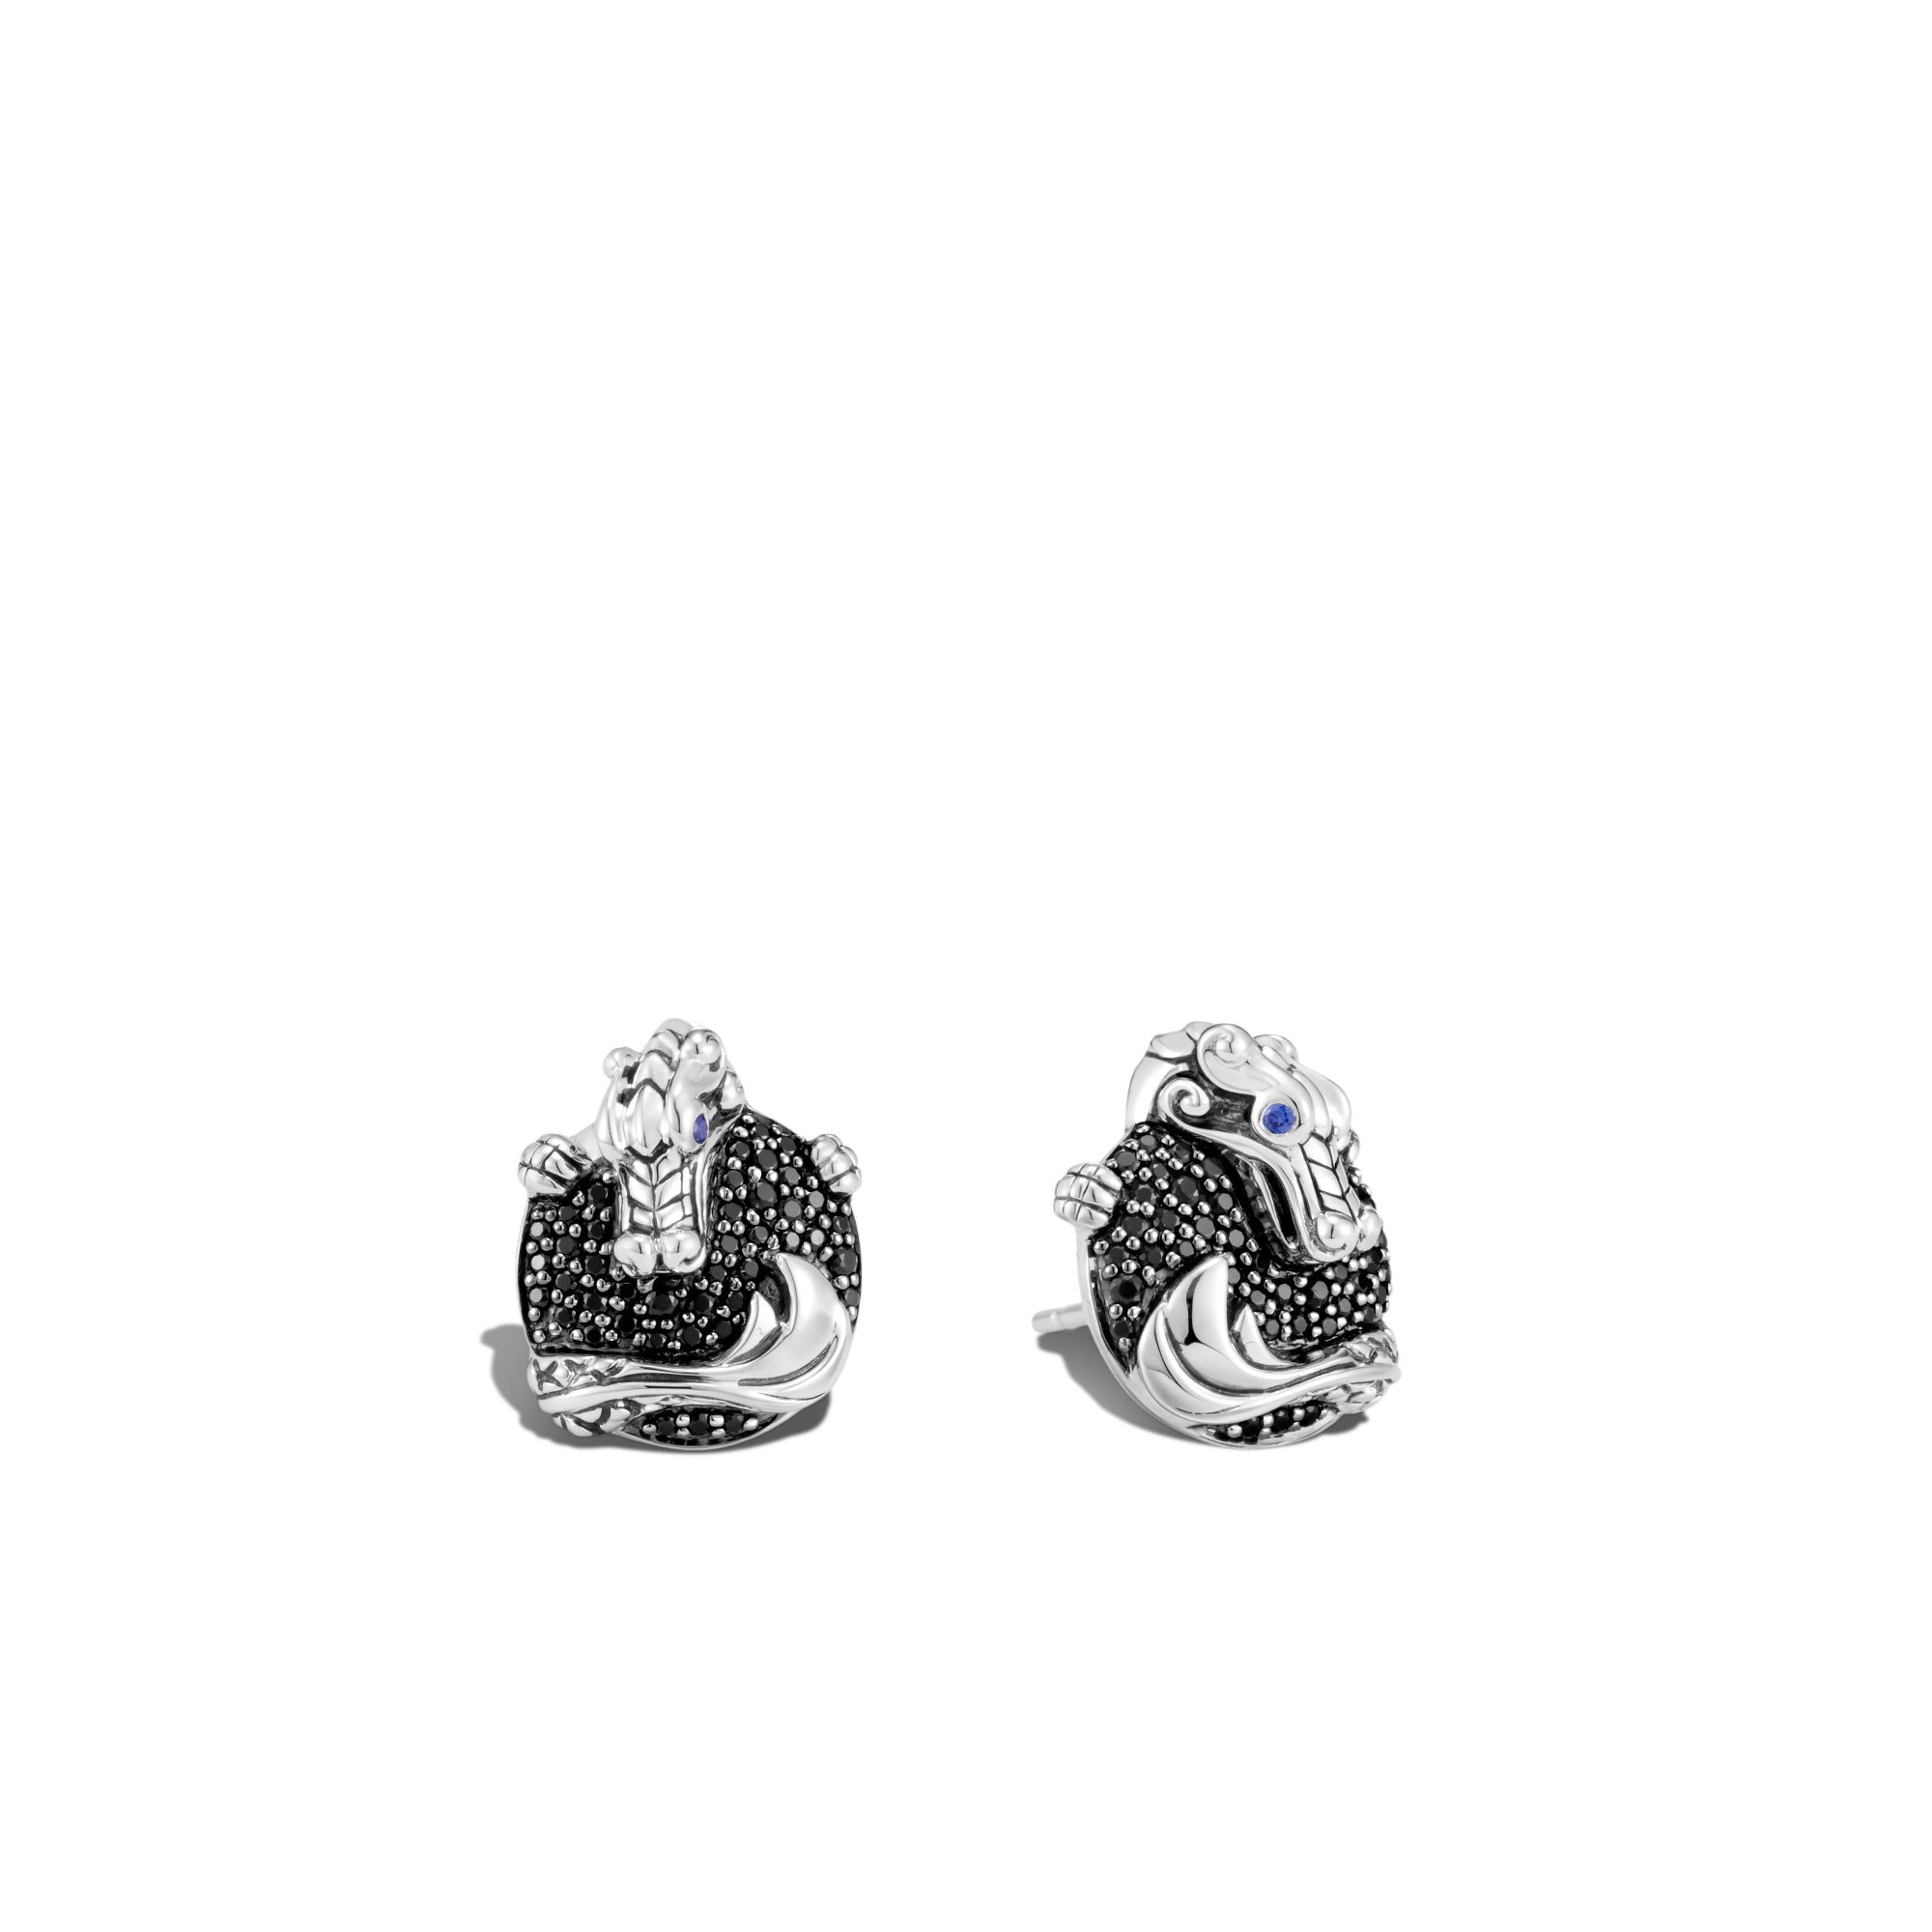 John Hardy Legends Sterling Silver Naga Stud Earrings with Black Sapphire